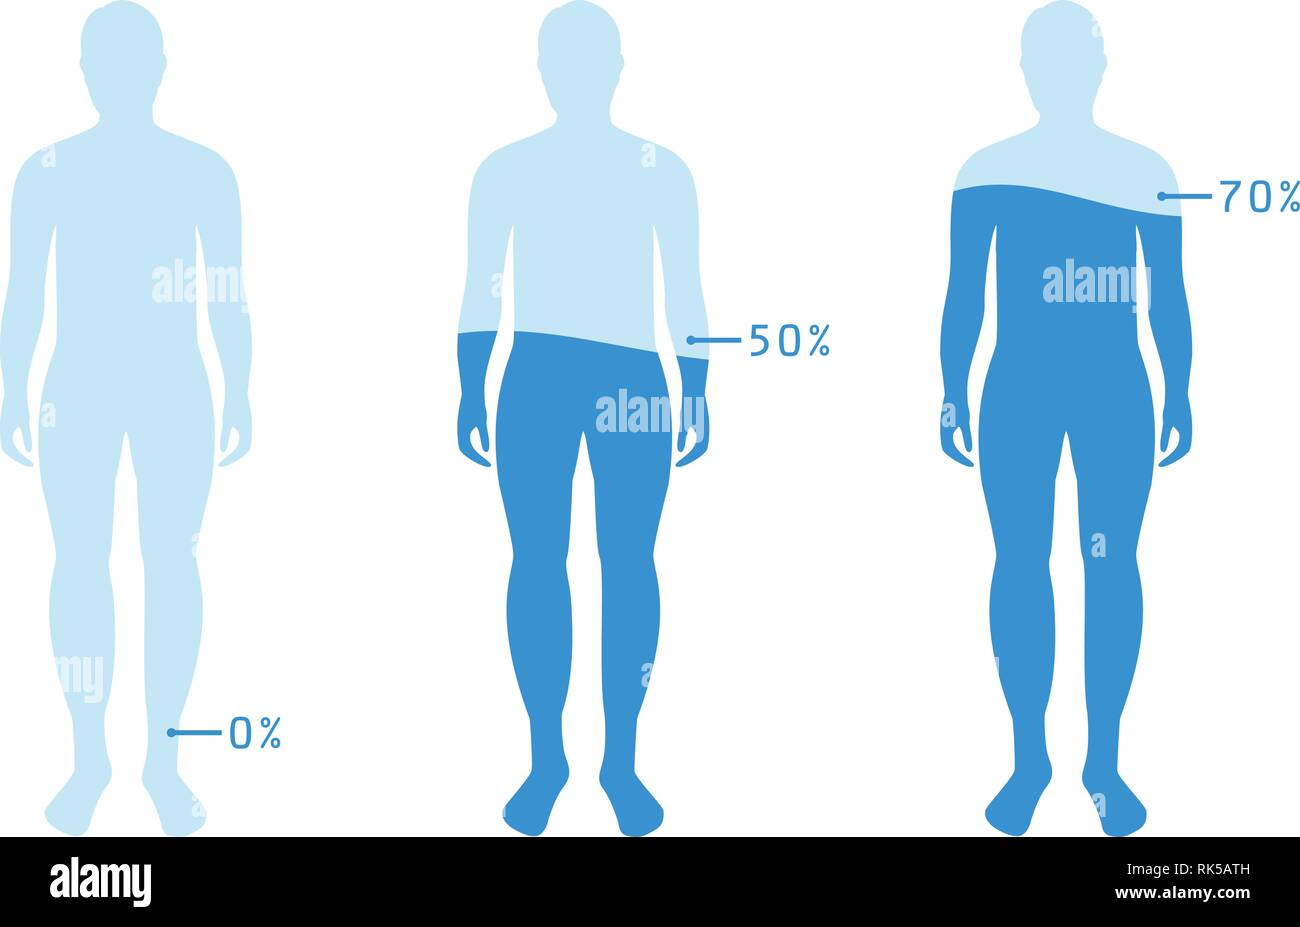 infographic showing water percentage level in human body vector illustration water balance stock vector image art alamy https www alamy com infographic showing water percentage level in human body vector illustration water balance image235531537 html